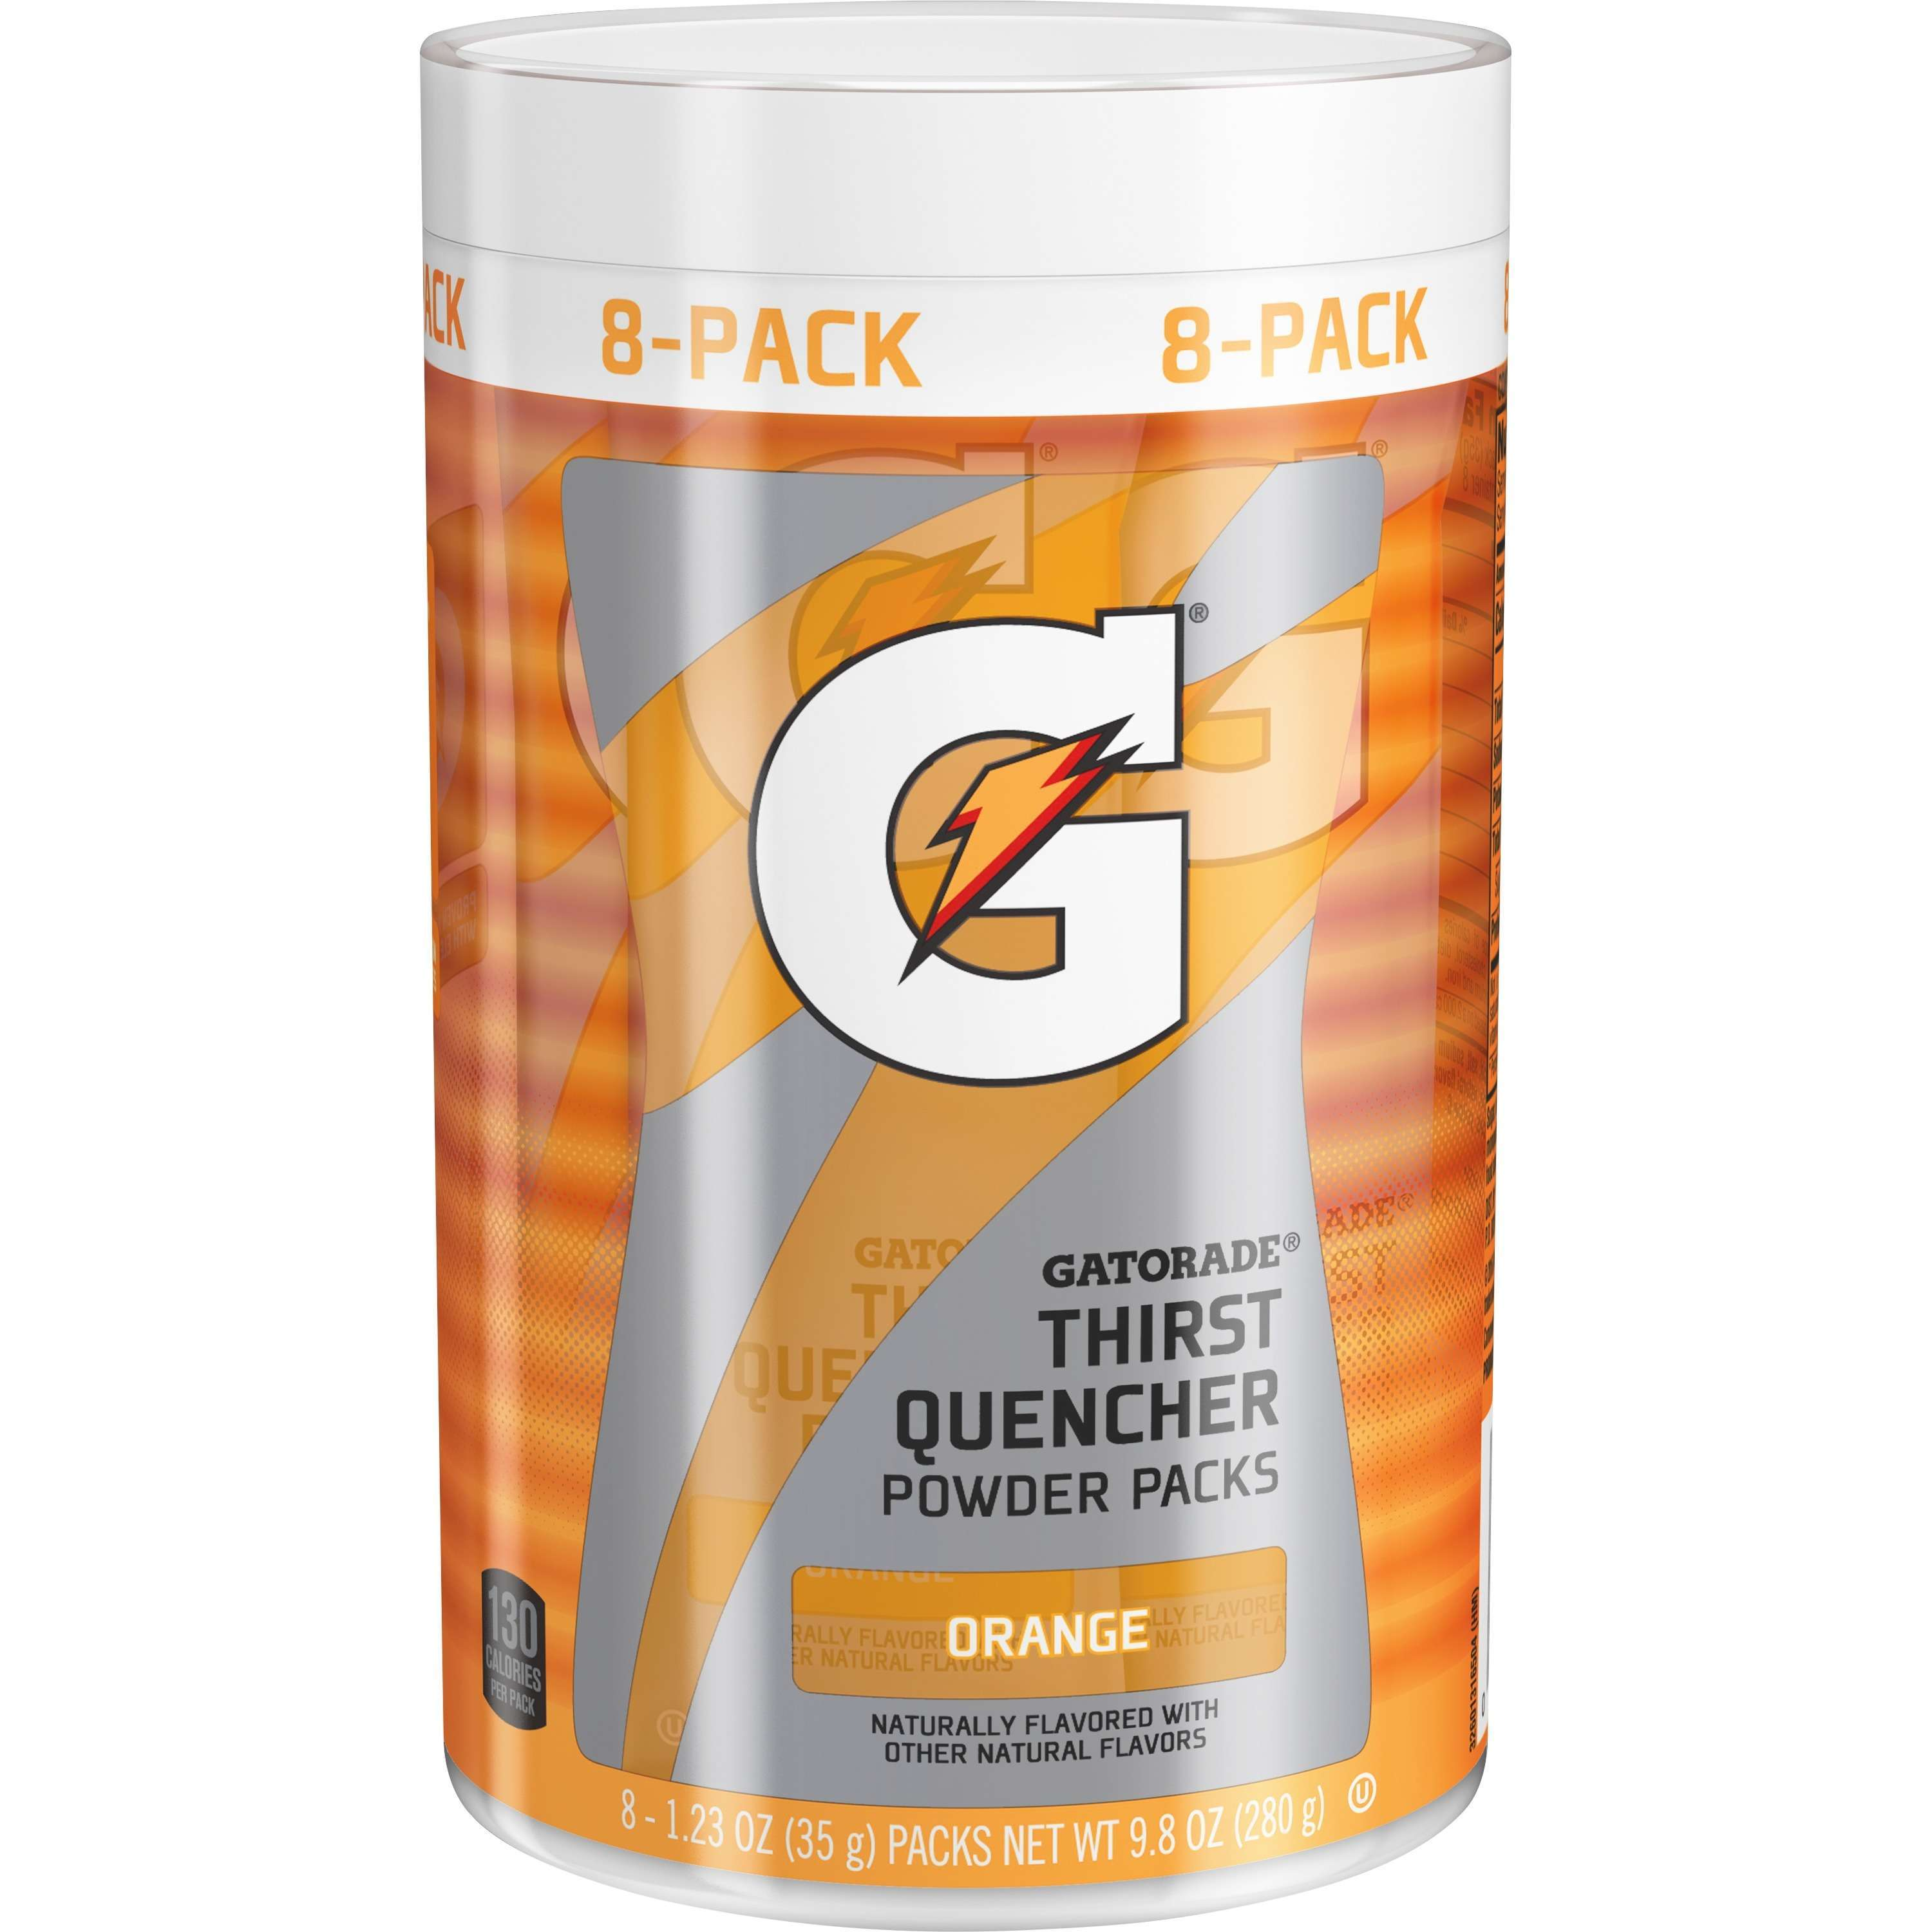 Gatorade G Orange Thirst Quencher Powder Packs 8-1.23 oz. Packs